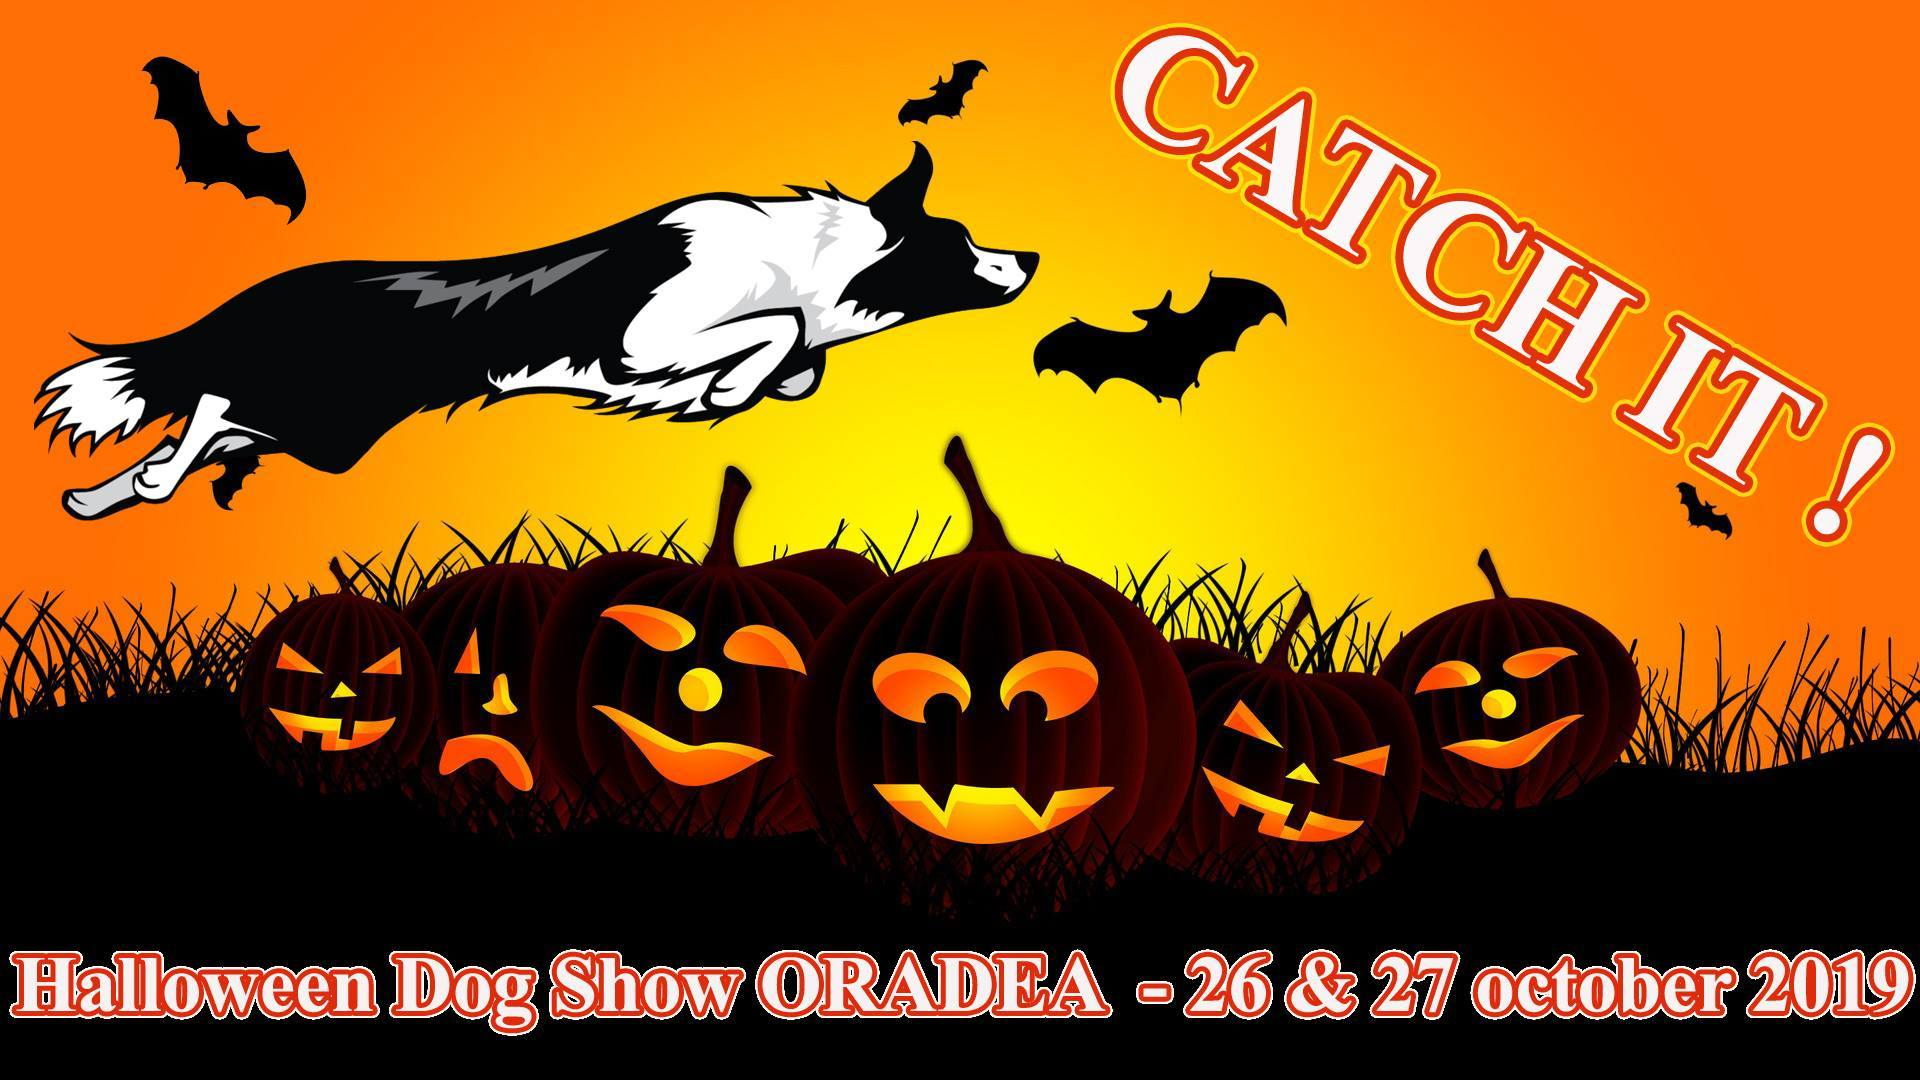 2020 Dog Show.Halloween Dog Show Oradea 2020 Program Offers